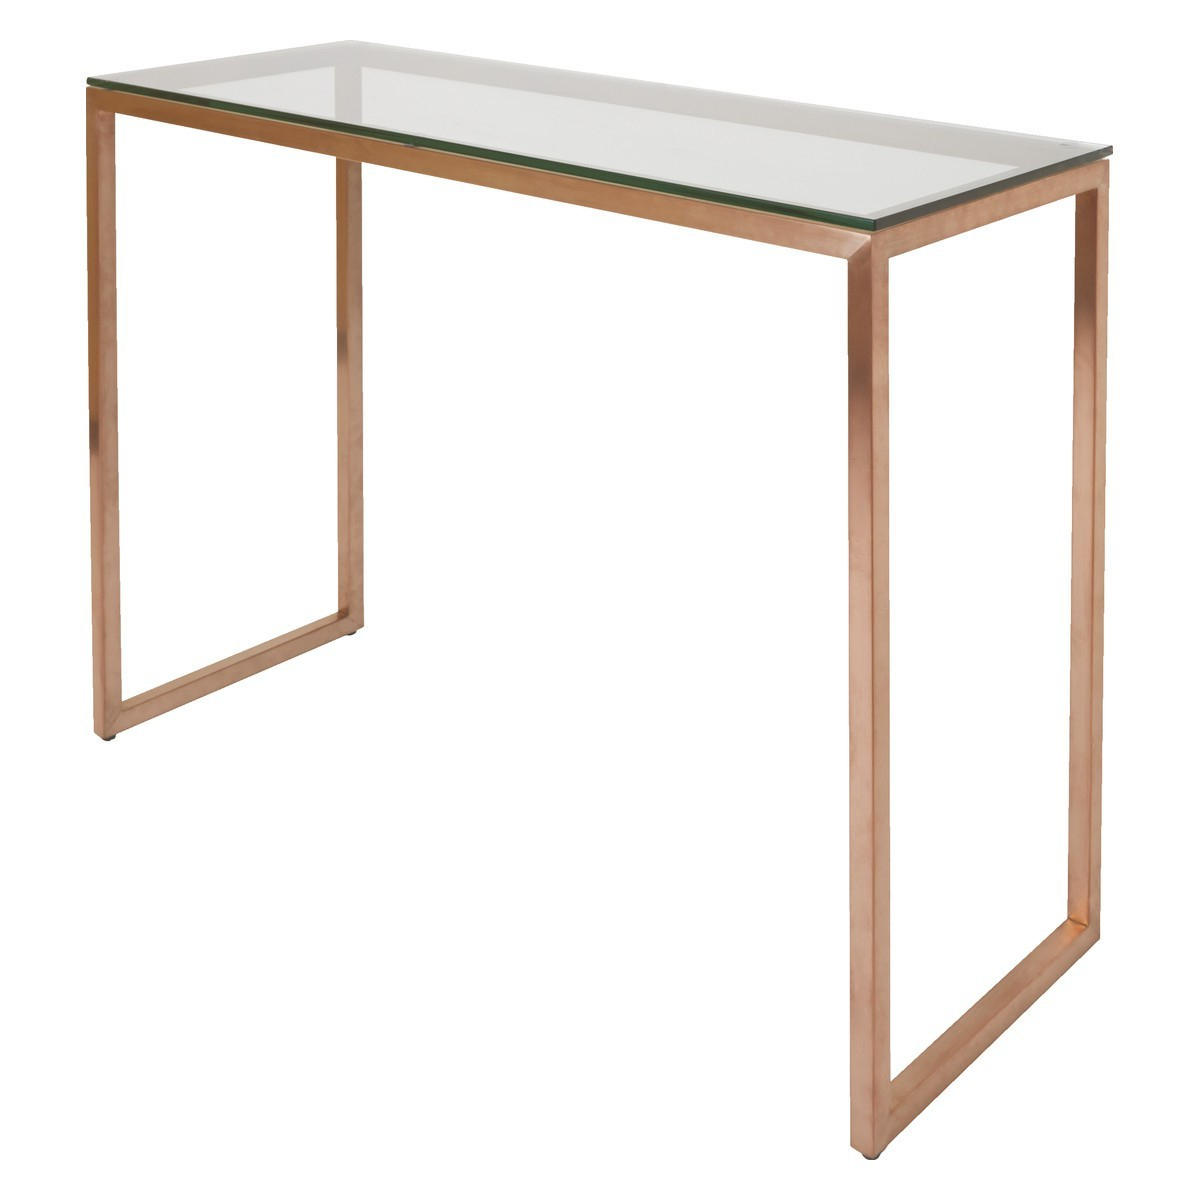 Elke Glass Console Tables With Brass Base Inside Recent Glass Console Tables – Netcarshow (Gallery 14 of 20)